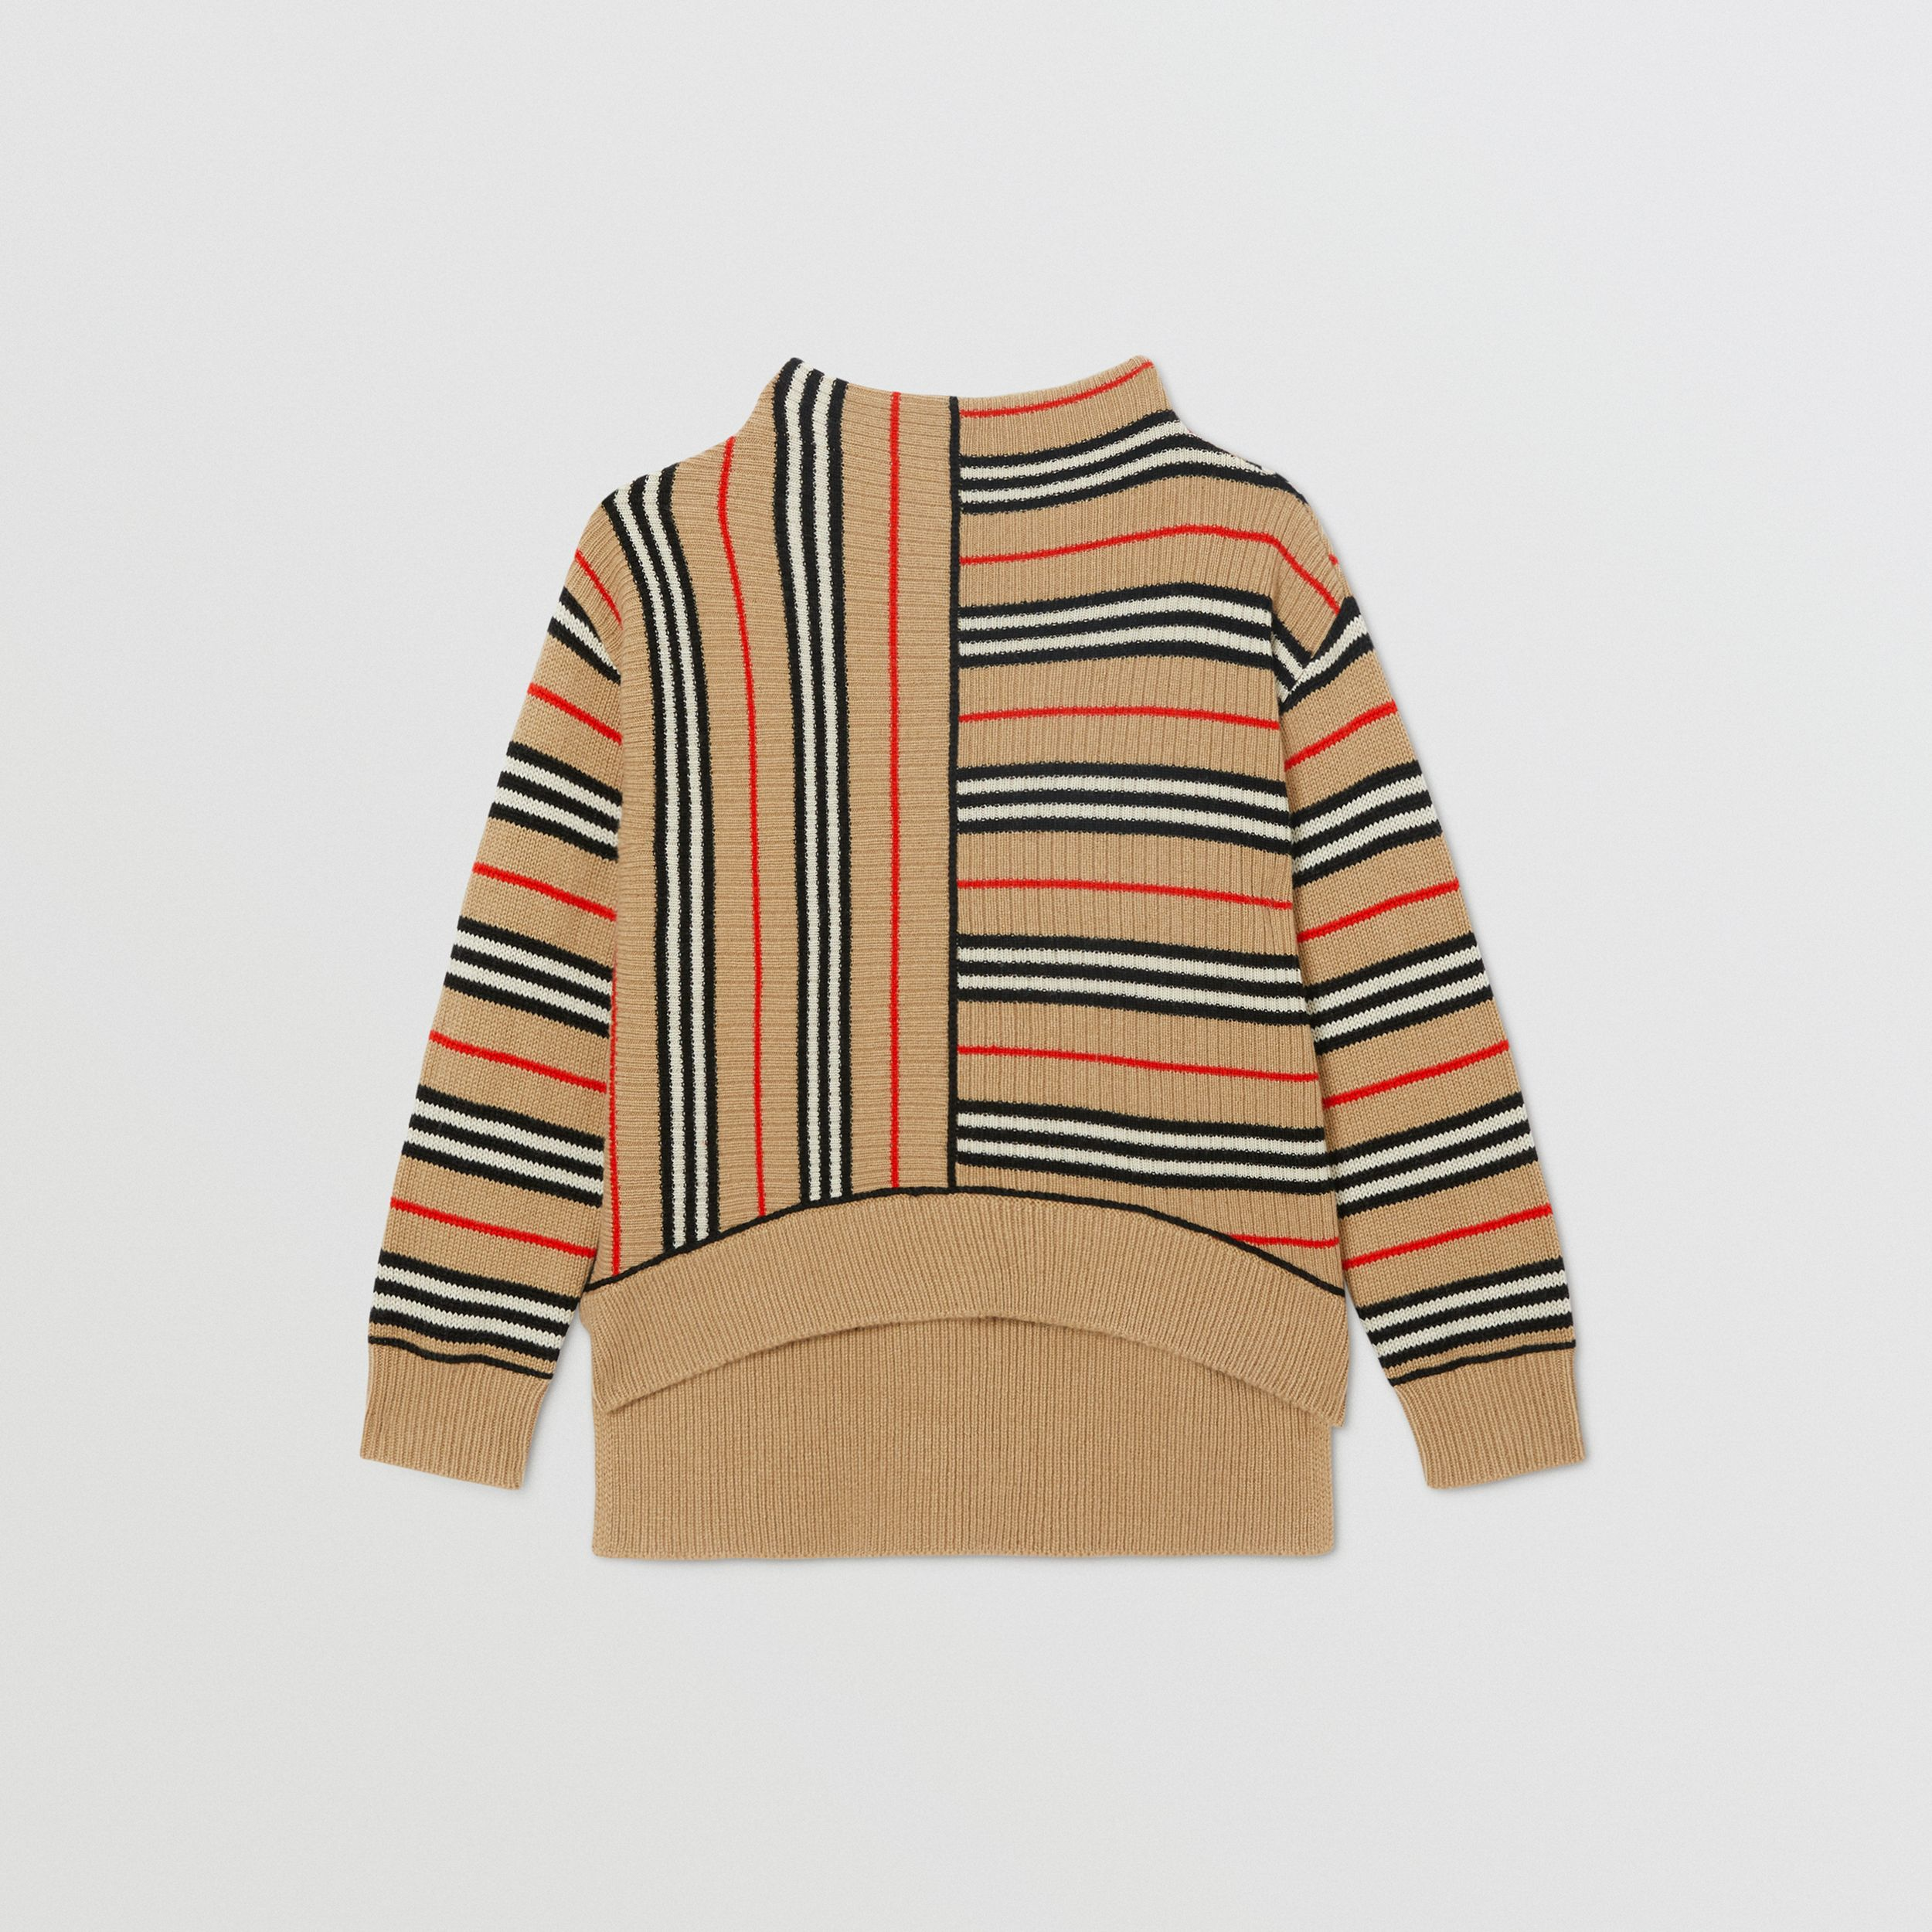 Contrast Icon Stripe Cashmere Wool Sweater in Archive Beige | Burberry - 1